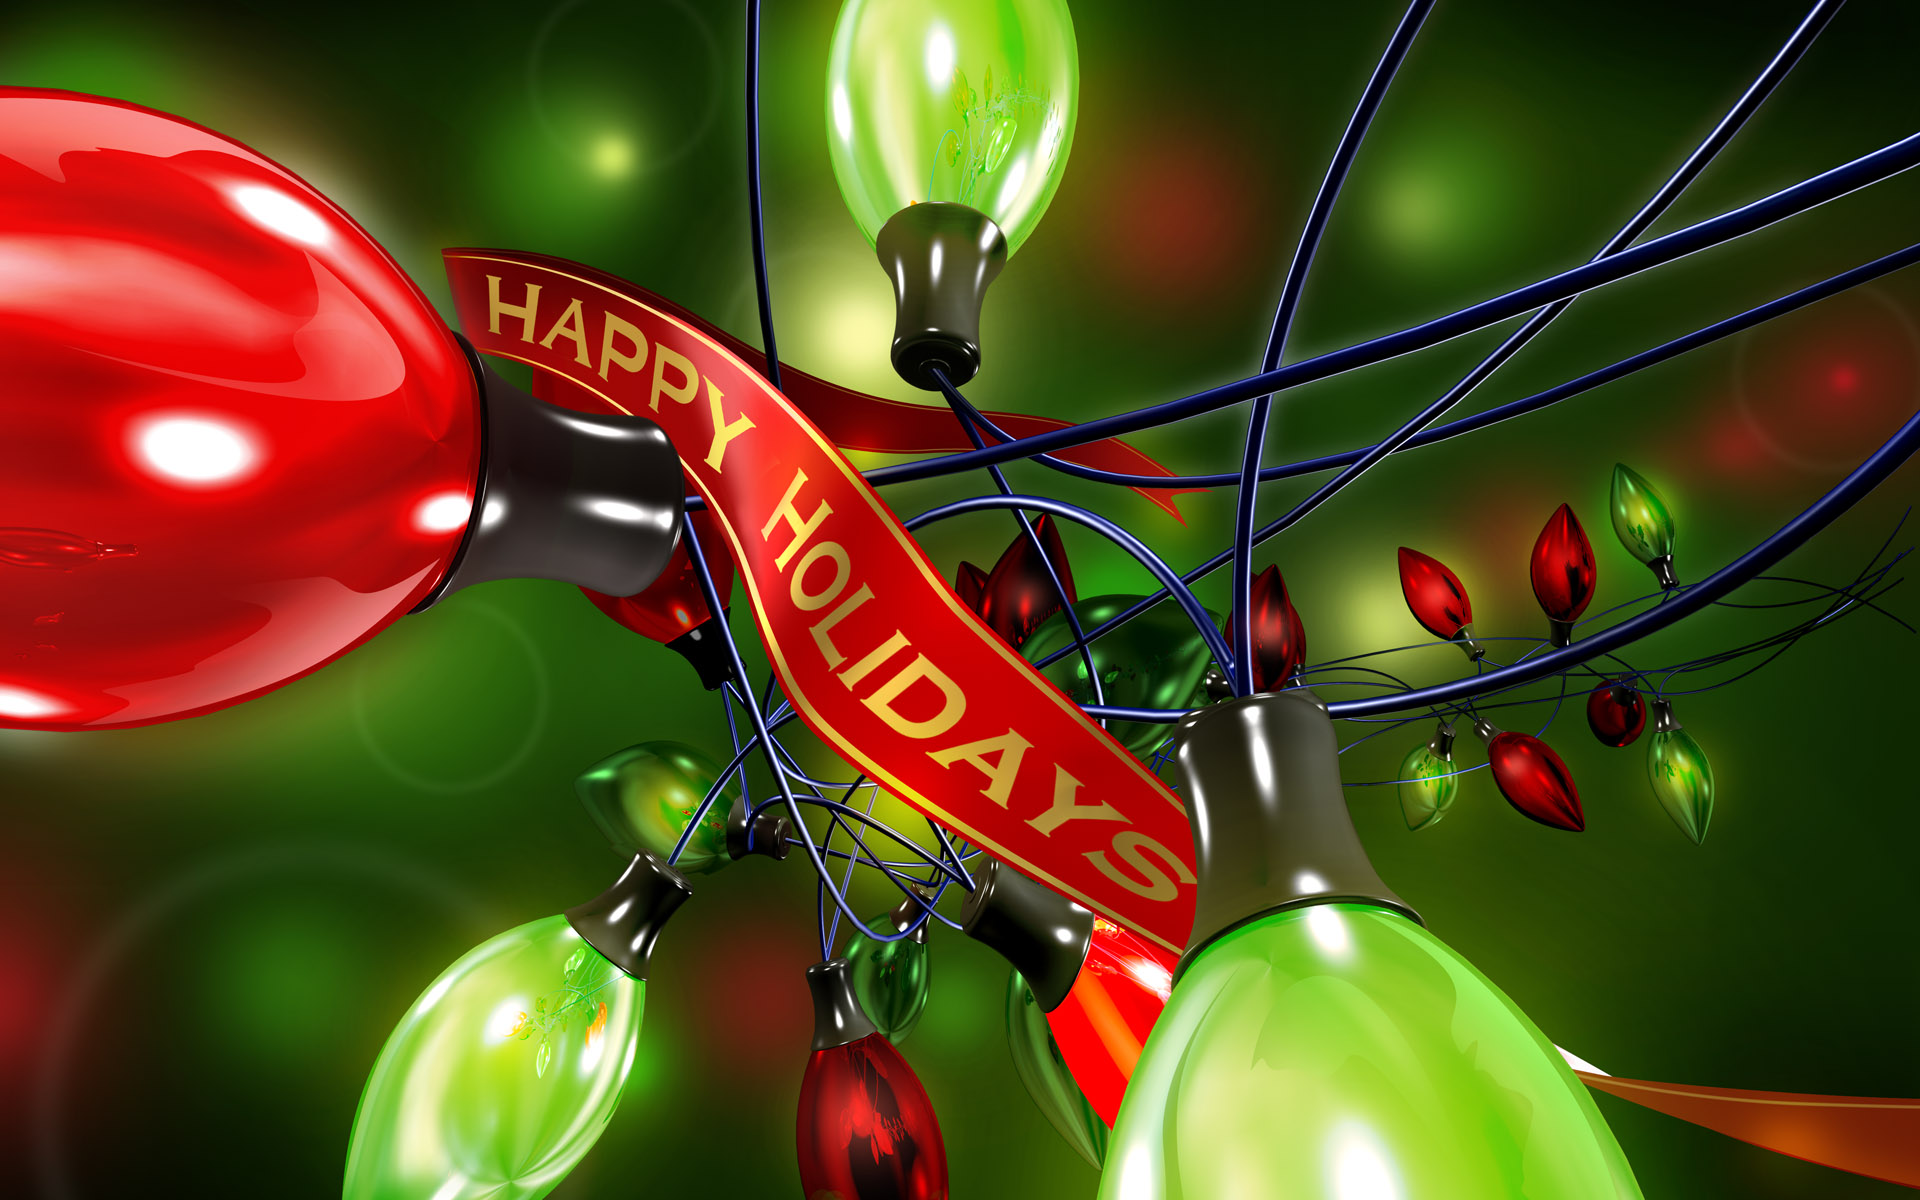 Happy holidays wallpaper 108196 for Screensaver natale 3d